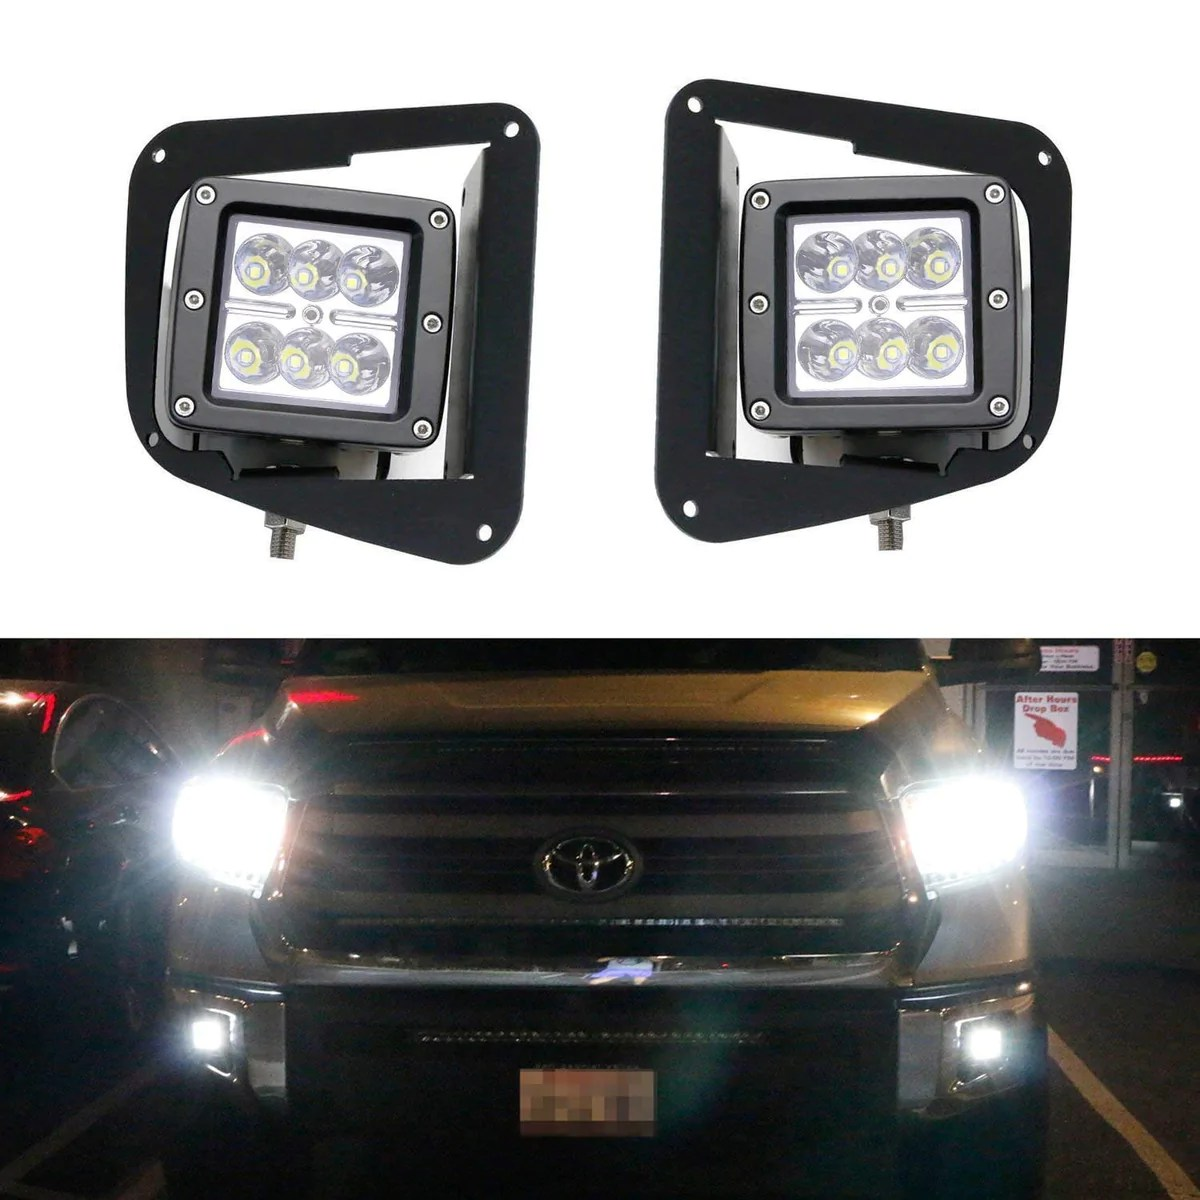 hight resolution of led pod light fog lamp kit for 2014 up toyota tundra includes 2 24w high power 2x3 cree led cubes foglight location mount brackets wiring adapter